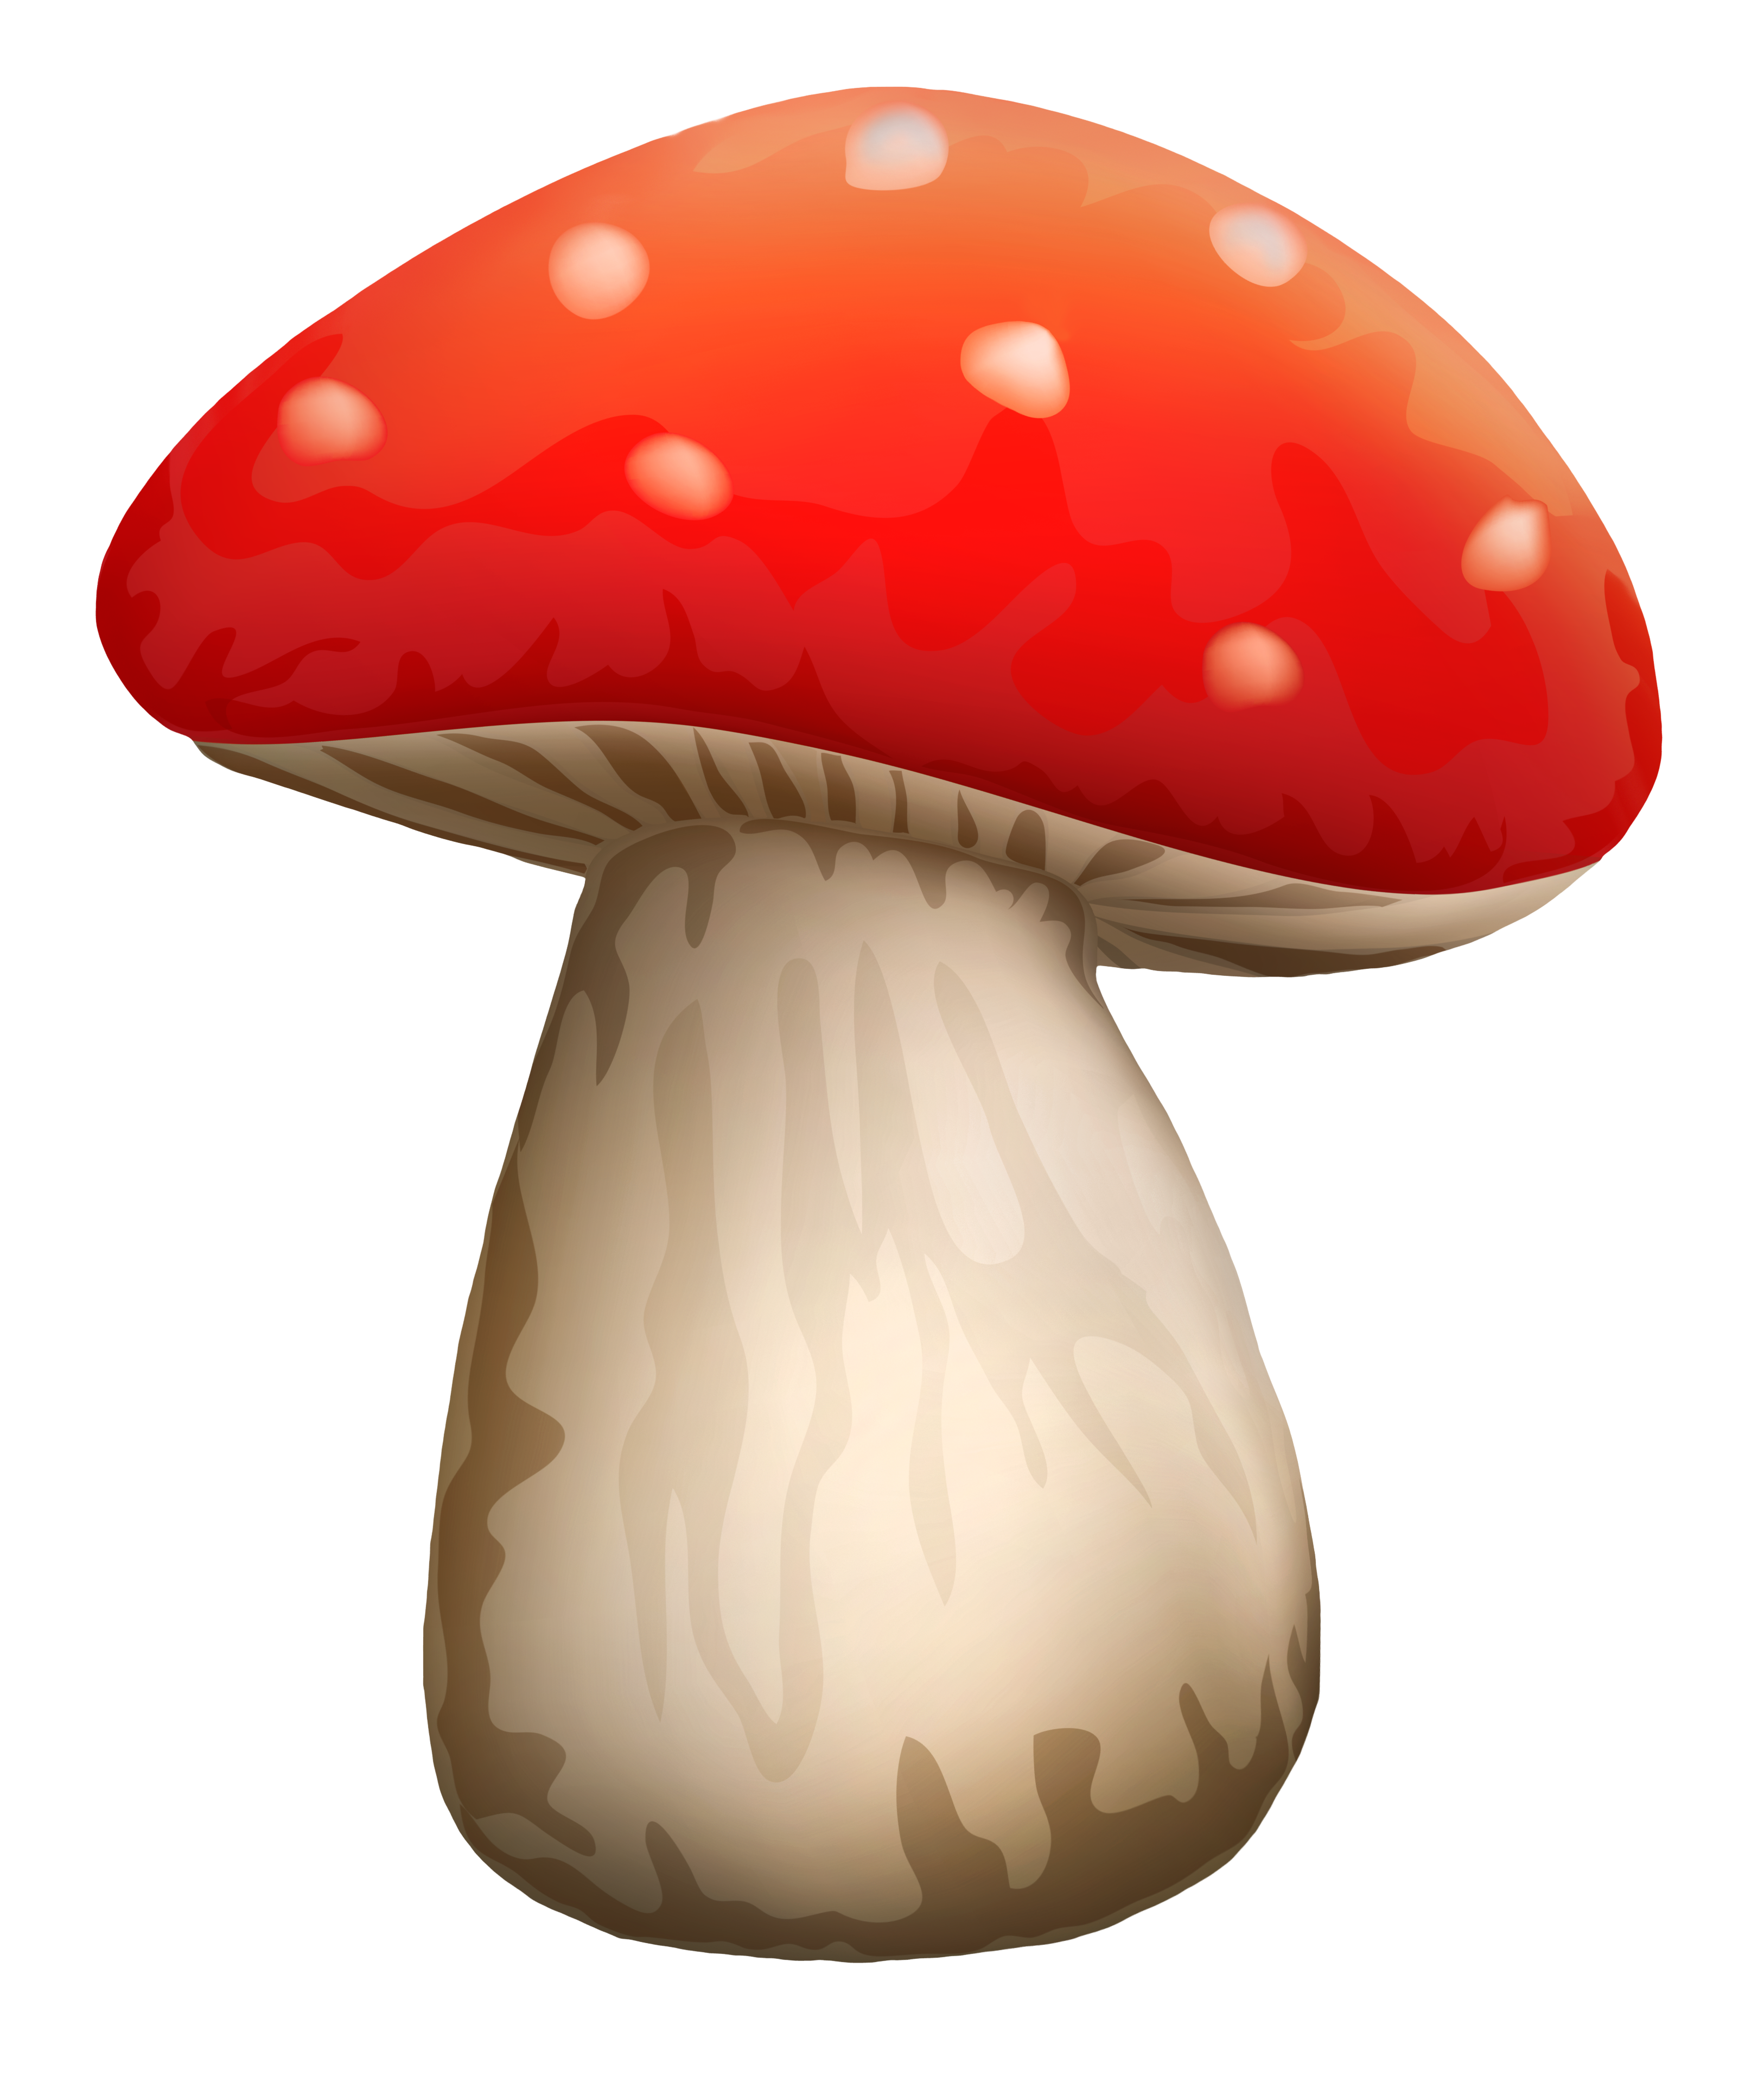 Mushrooms vector red mushroom. Poisonous with white dots